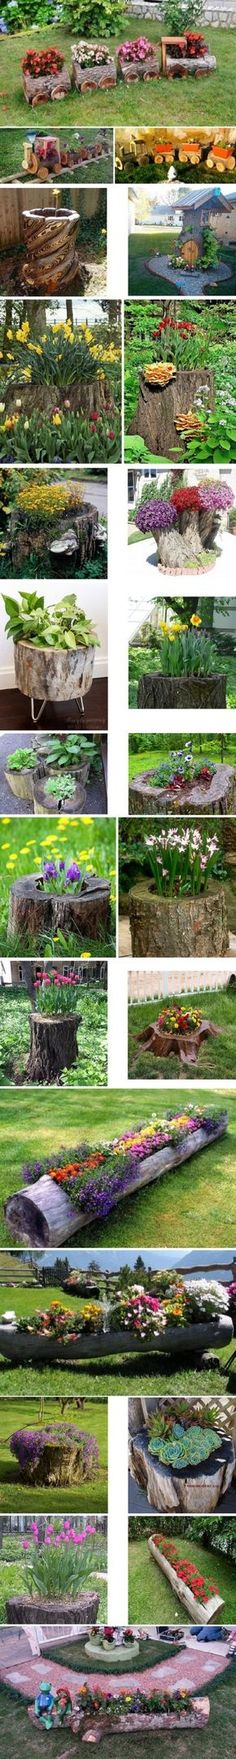 24 Tree Stumps Turned Into Beautiful Flower Planters Flower Planters, Garden Planters, Garden Art, Garden Design, Tree Planters, Flowers Garden, Flower Pots, Wood Stumps, Tree Stumps